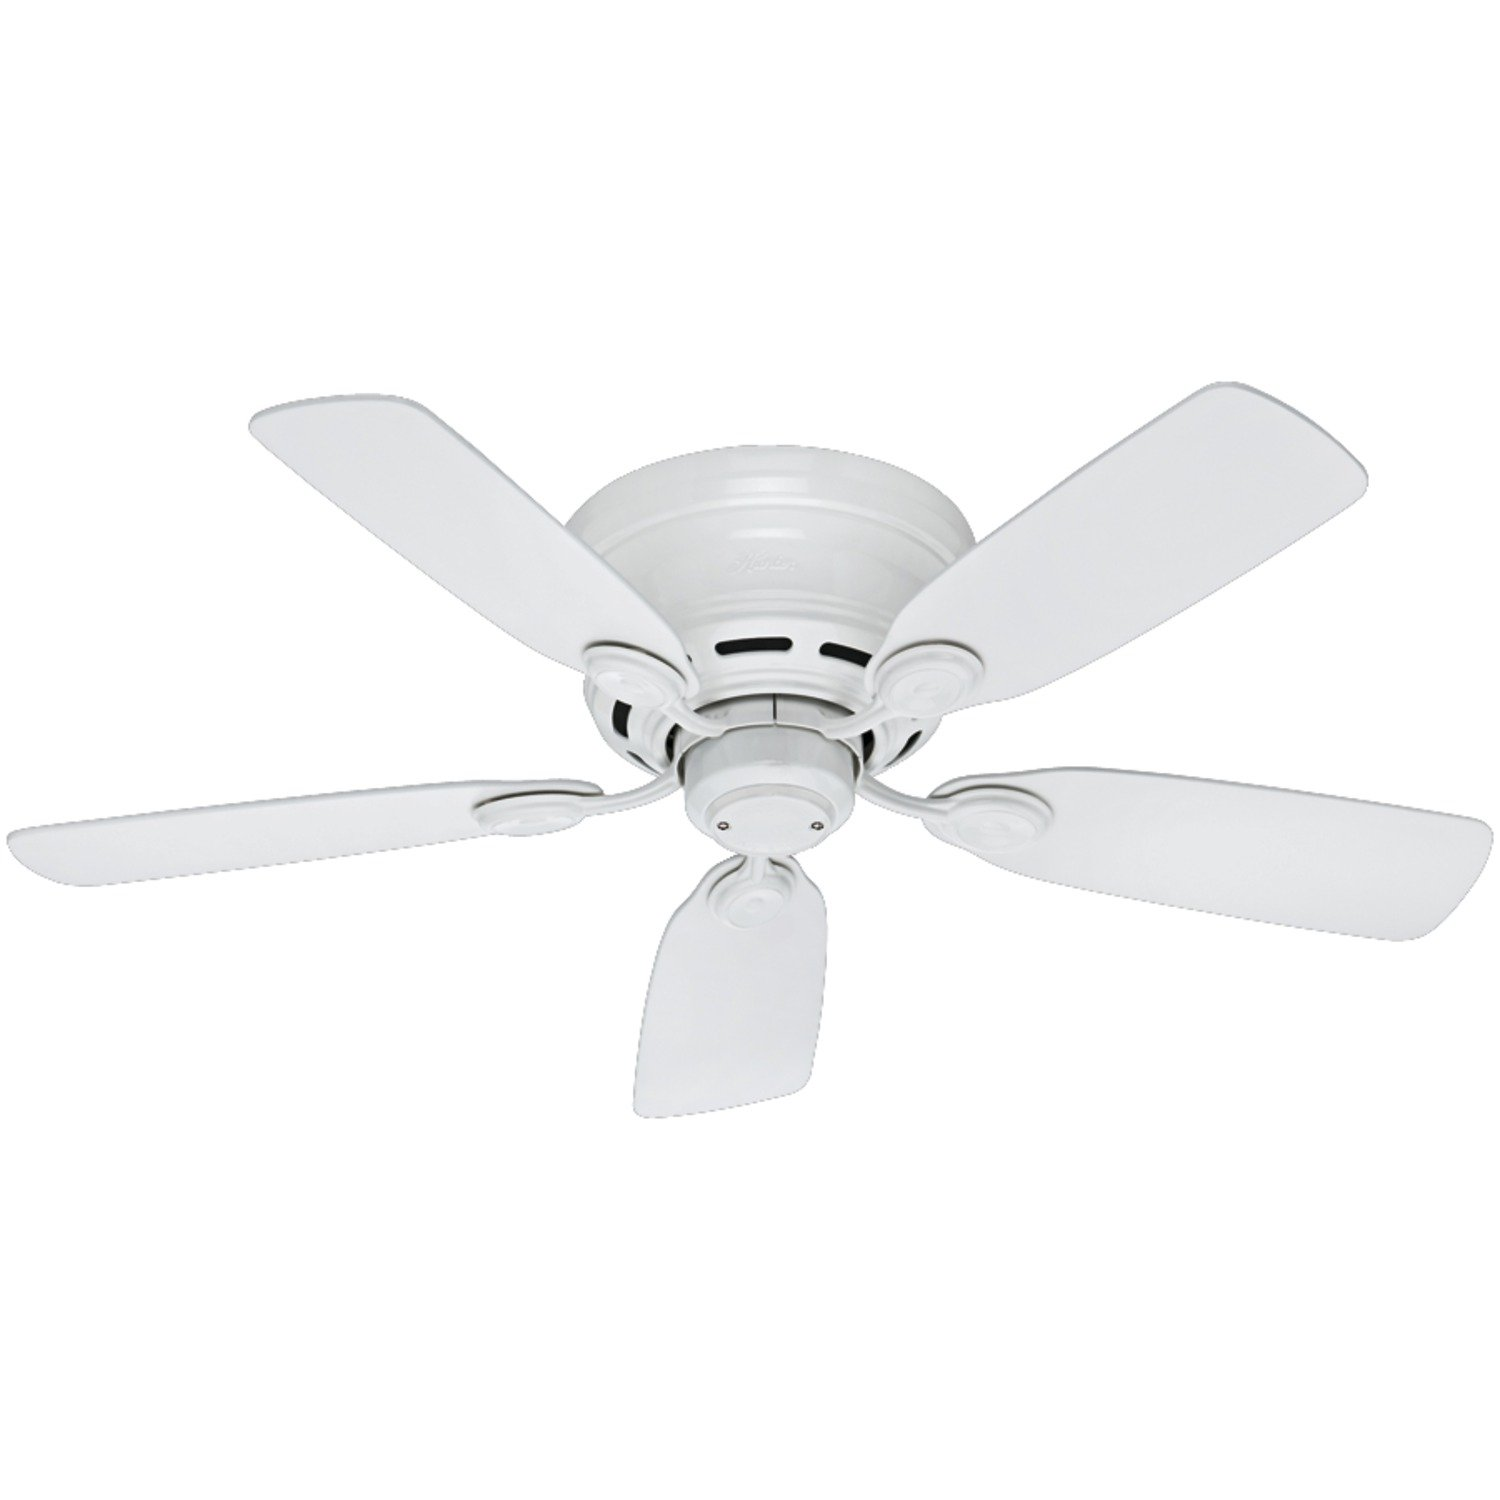 ceiling light hunter newsome model fan with fans